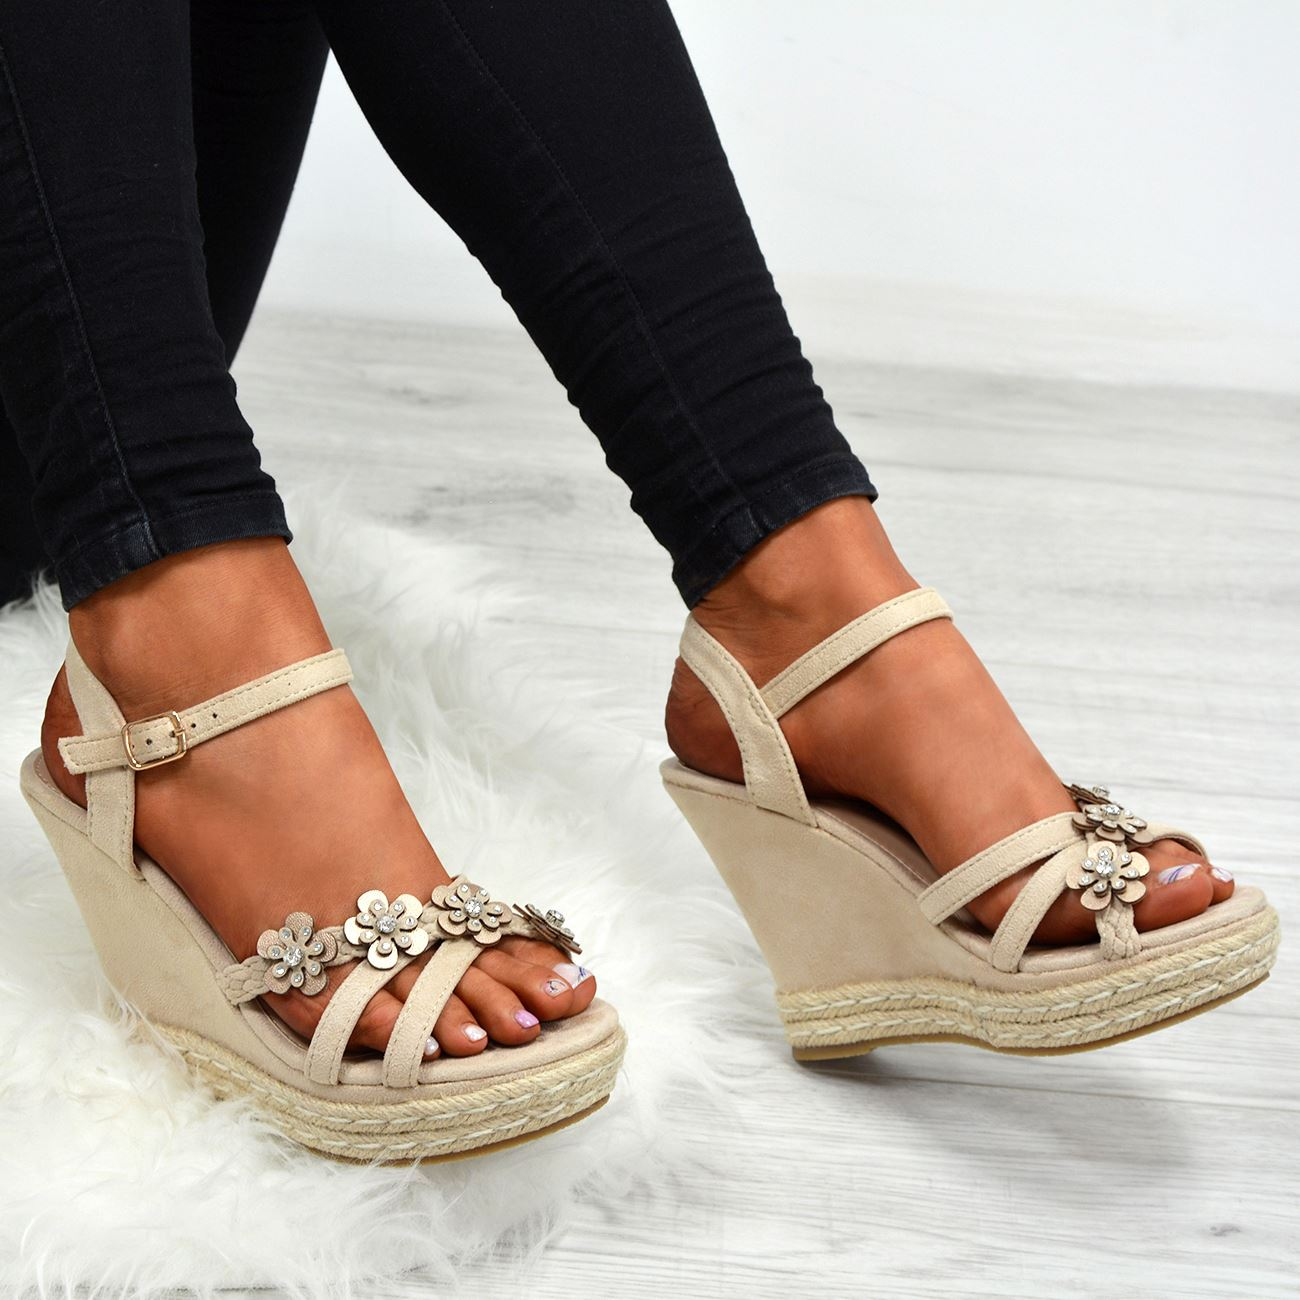 Womens-Ladies-Peep-Toe-Studded-Flowers-Wedge-Sandals-Platform-Shoes-Sizes-Uk